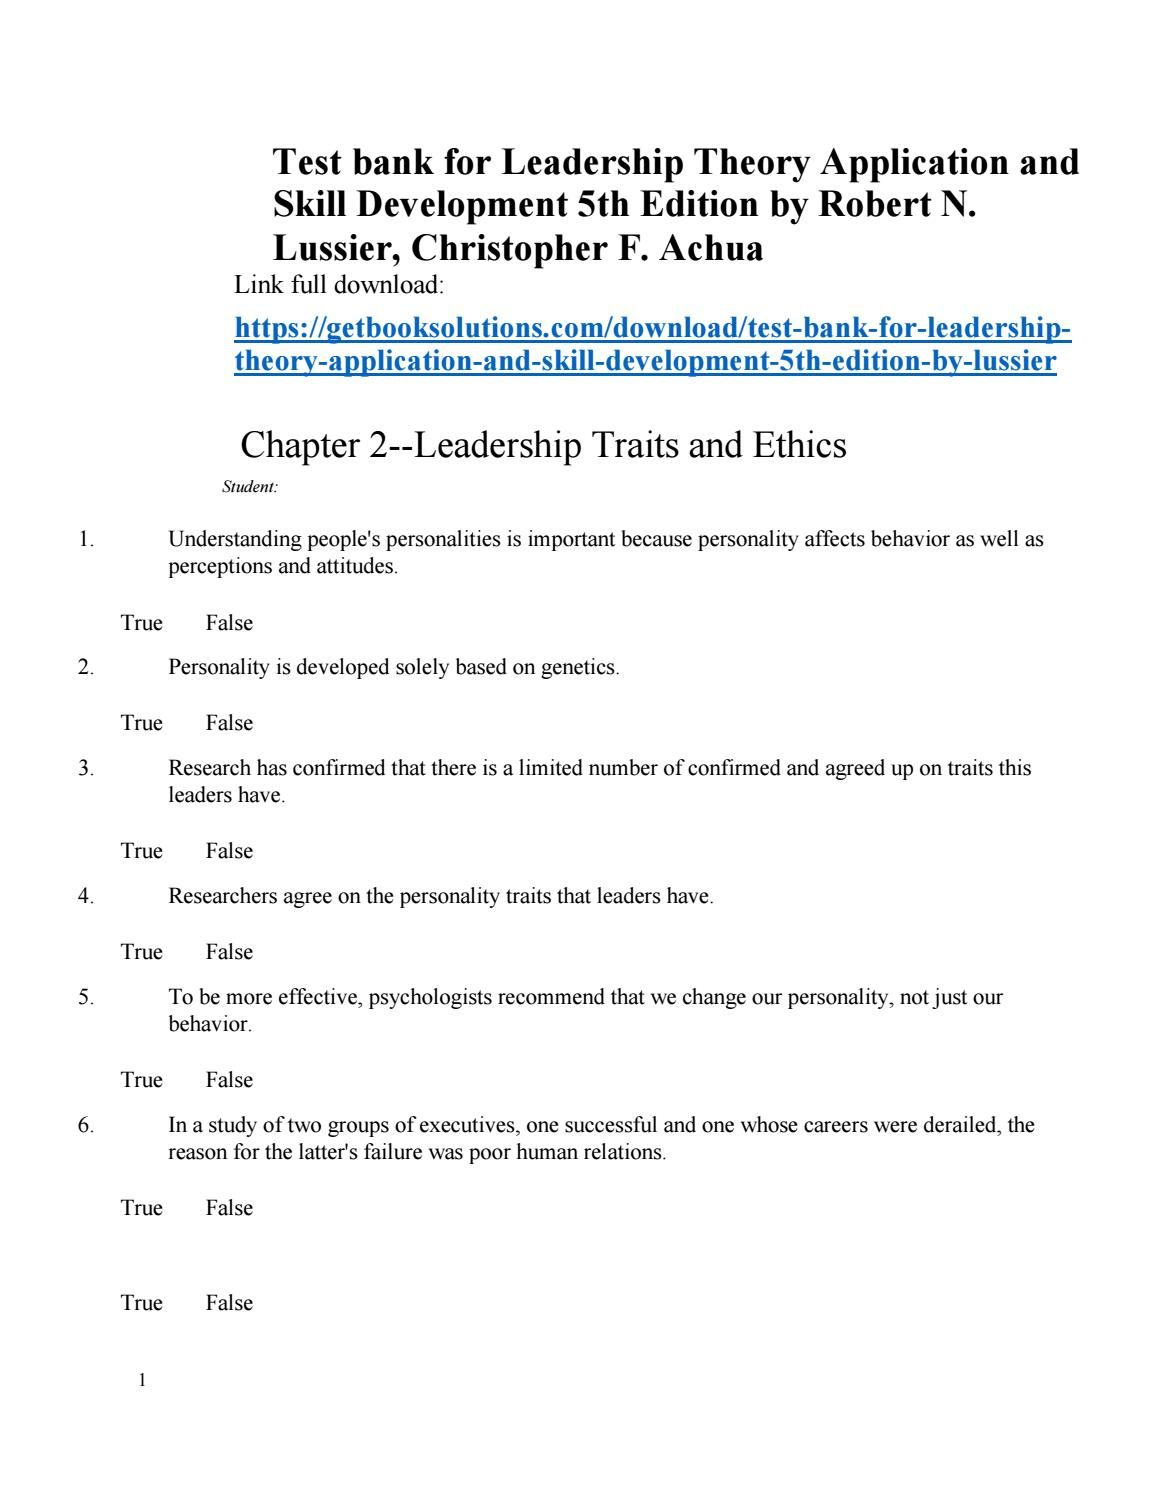 test bank for leadership theory application and skill development